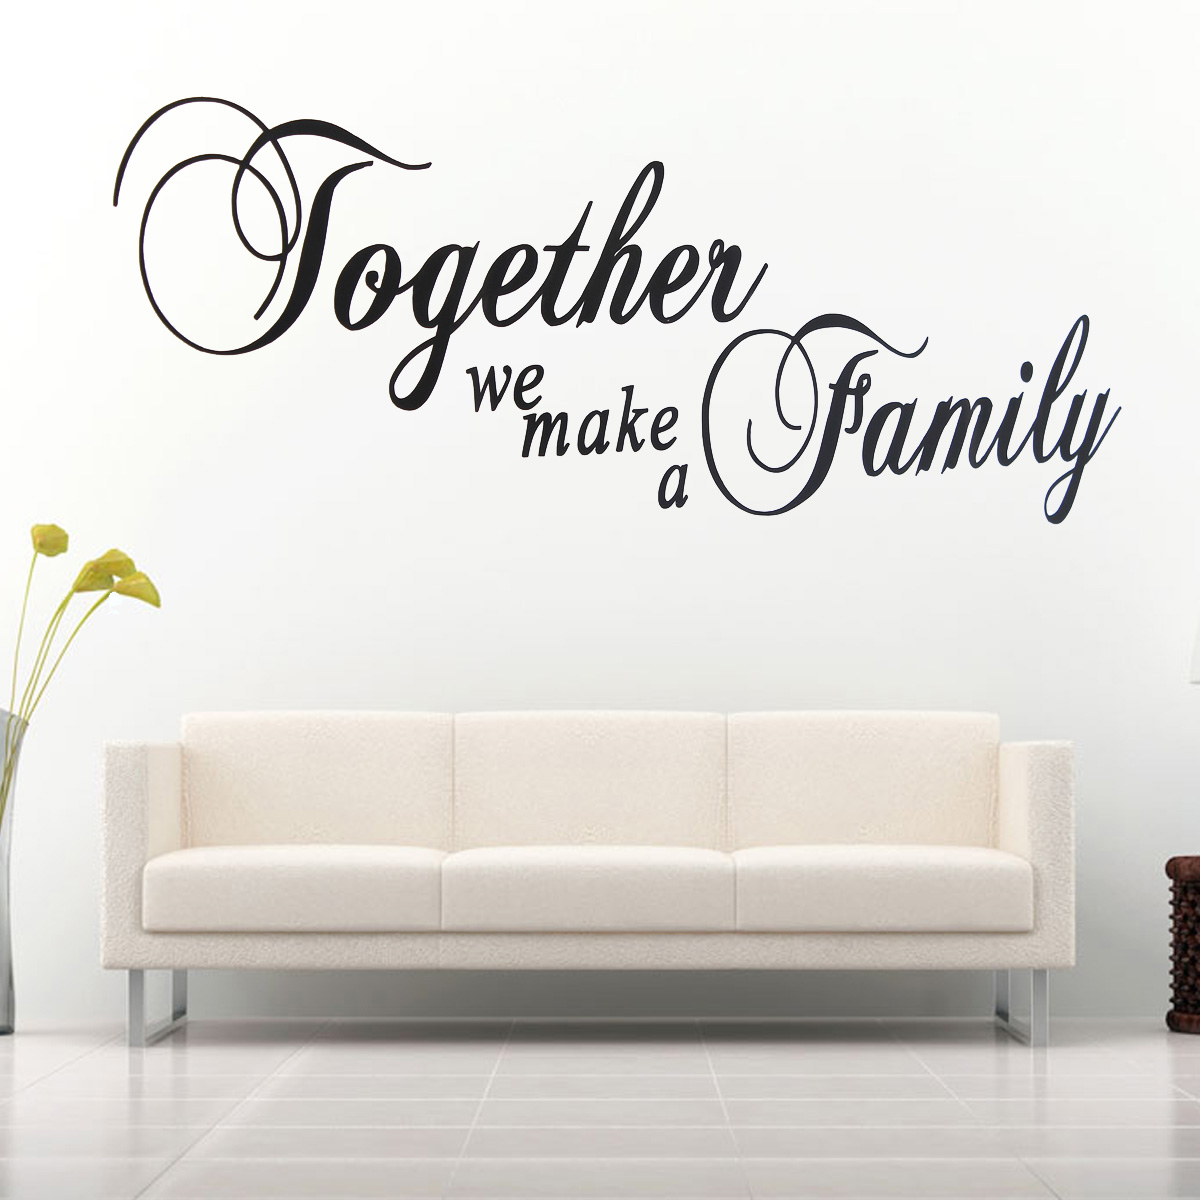 wandtattoo aufkleber wandsticker spruch schlafzimmer wohnzimmder k che wand deko. Black Bedroom Furniture Sets. Home Design Ideas